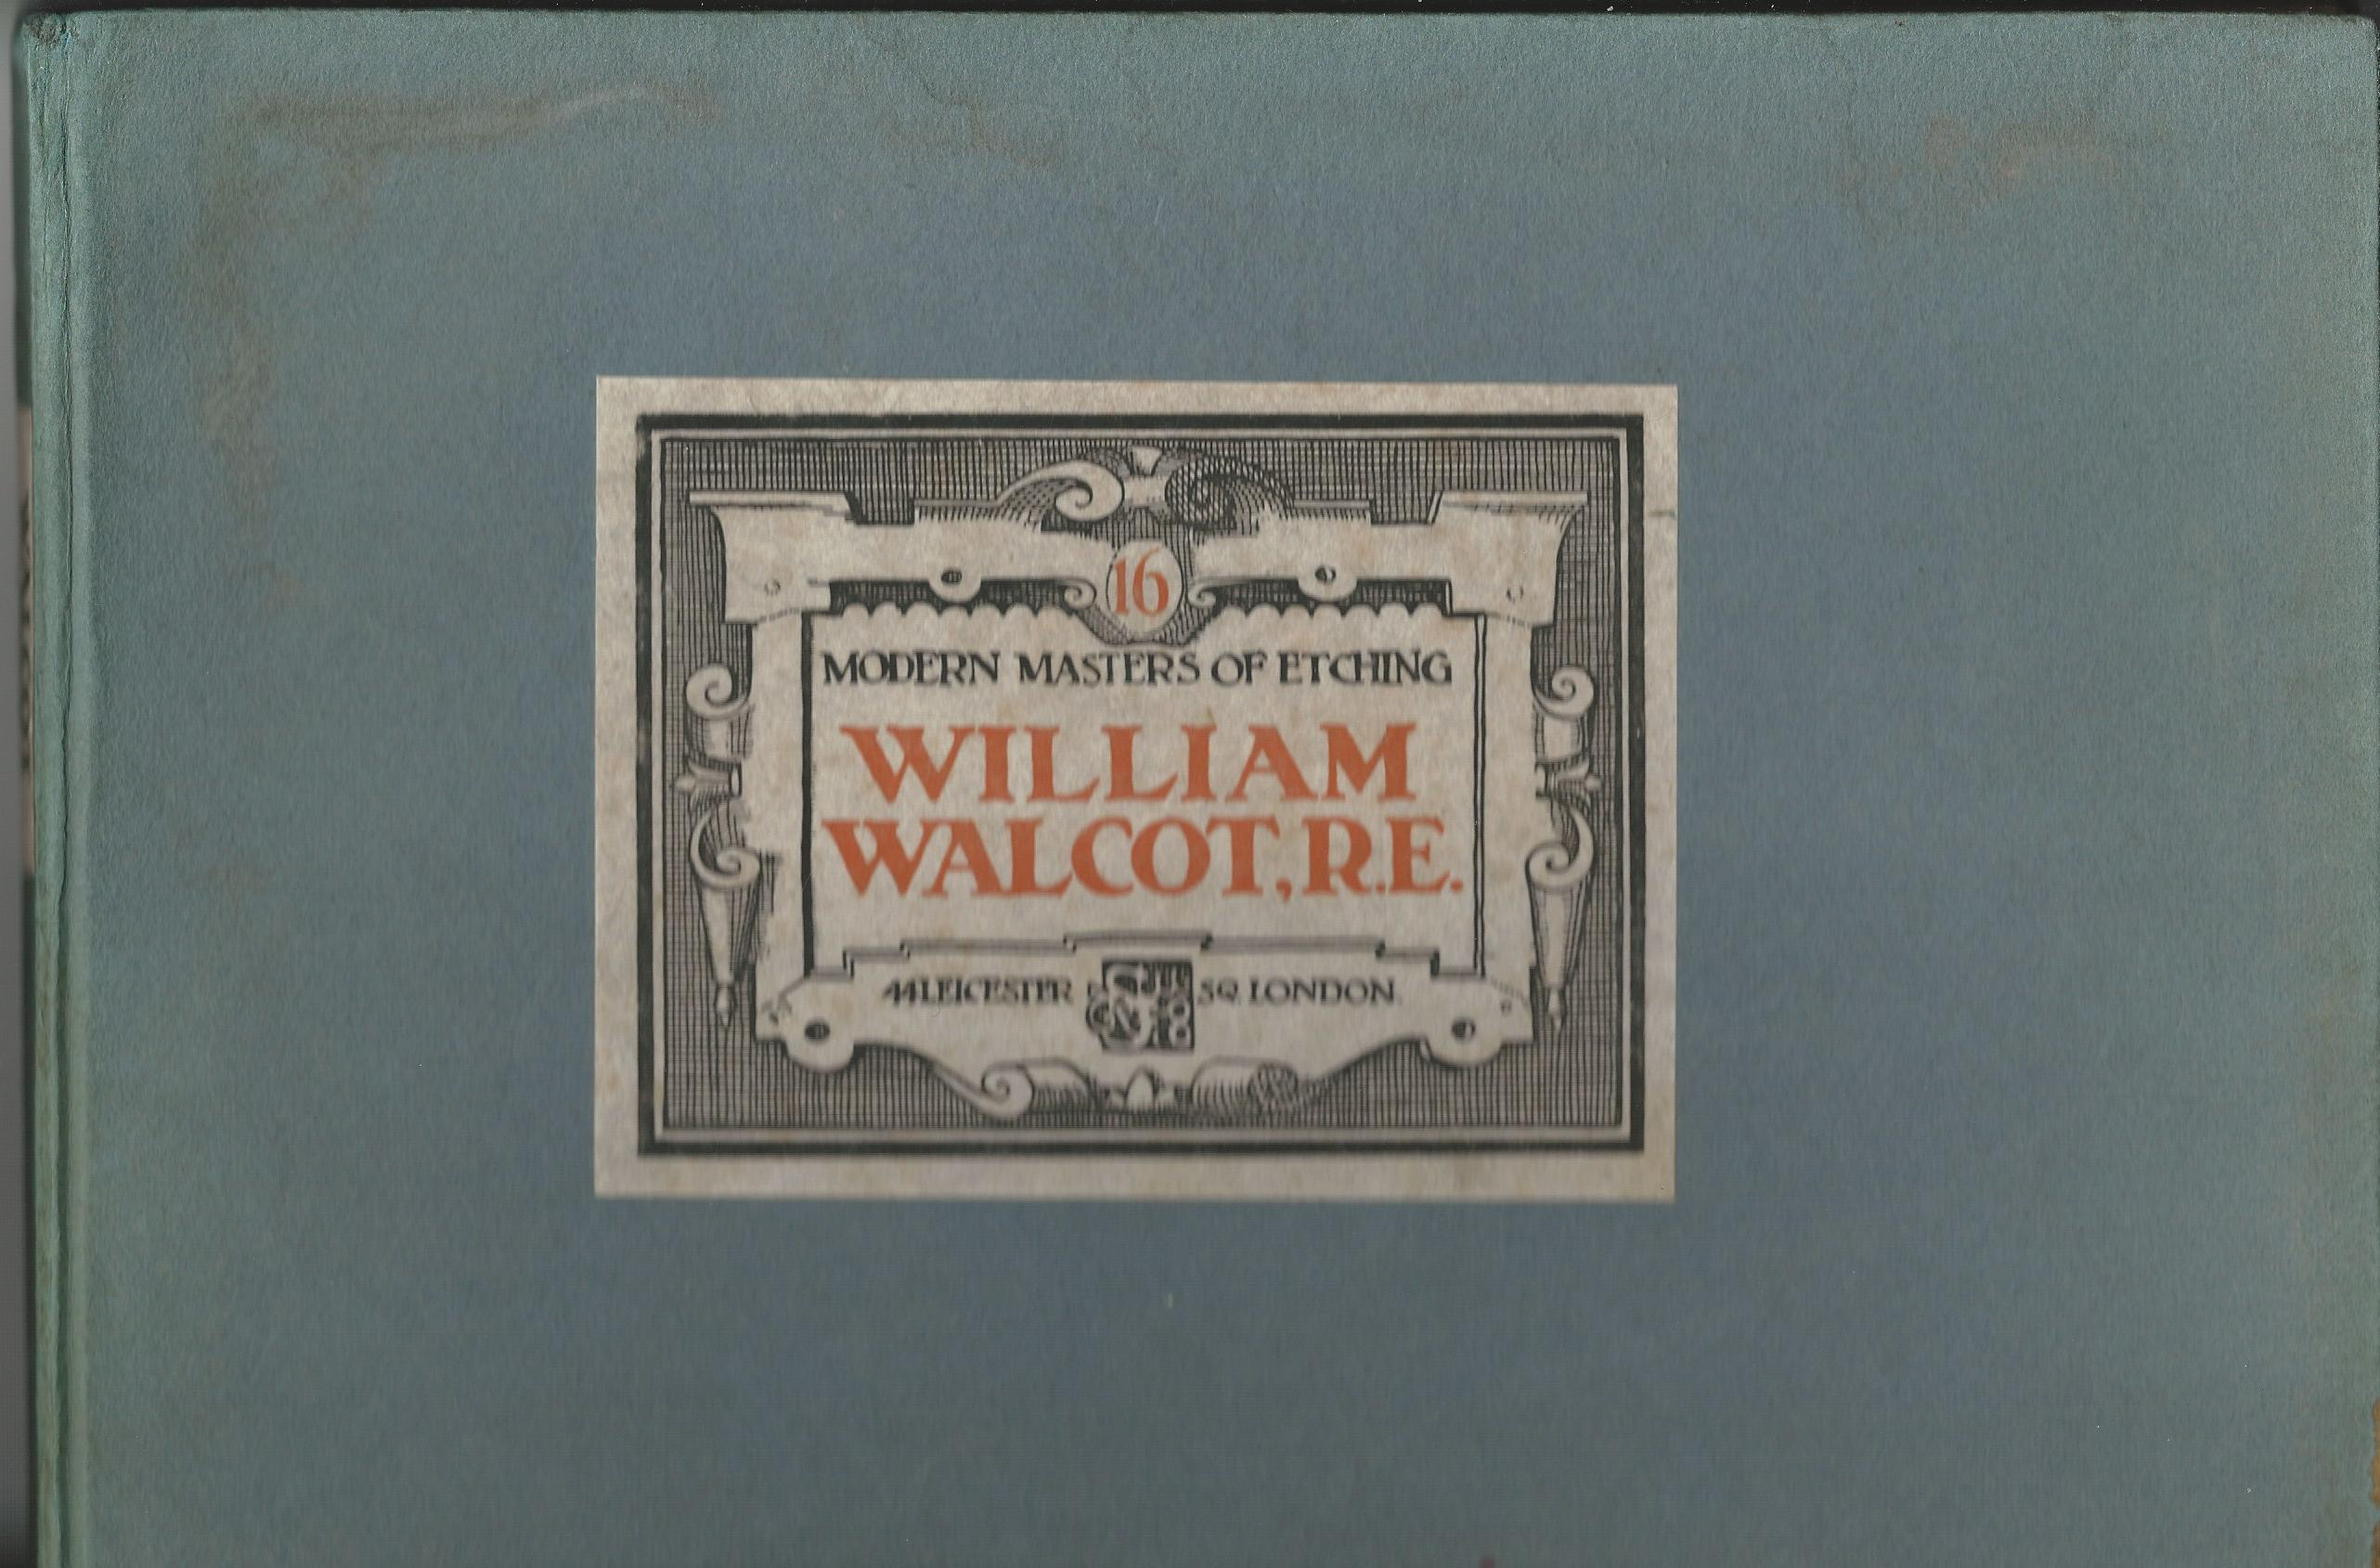 Image for Modern Masters of Etching - William Walcot, R.E. No.16